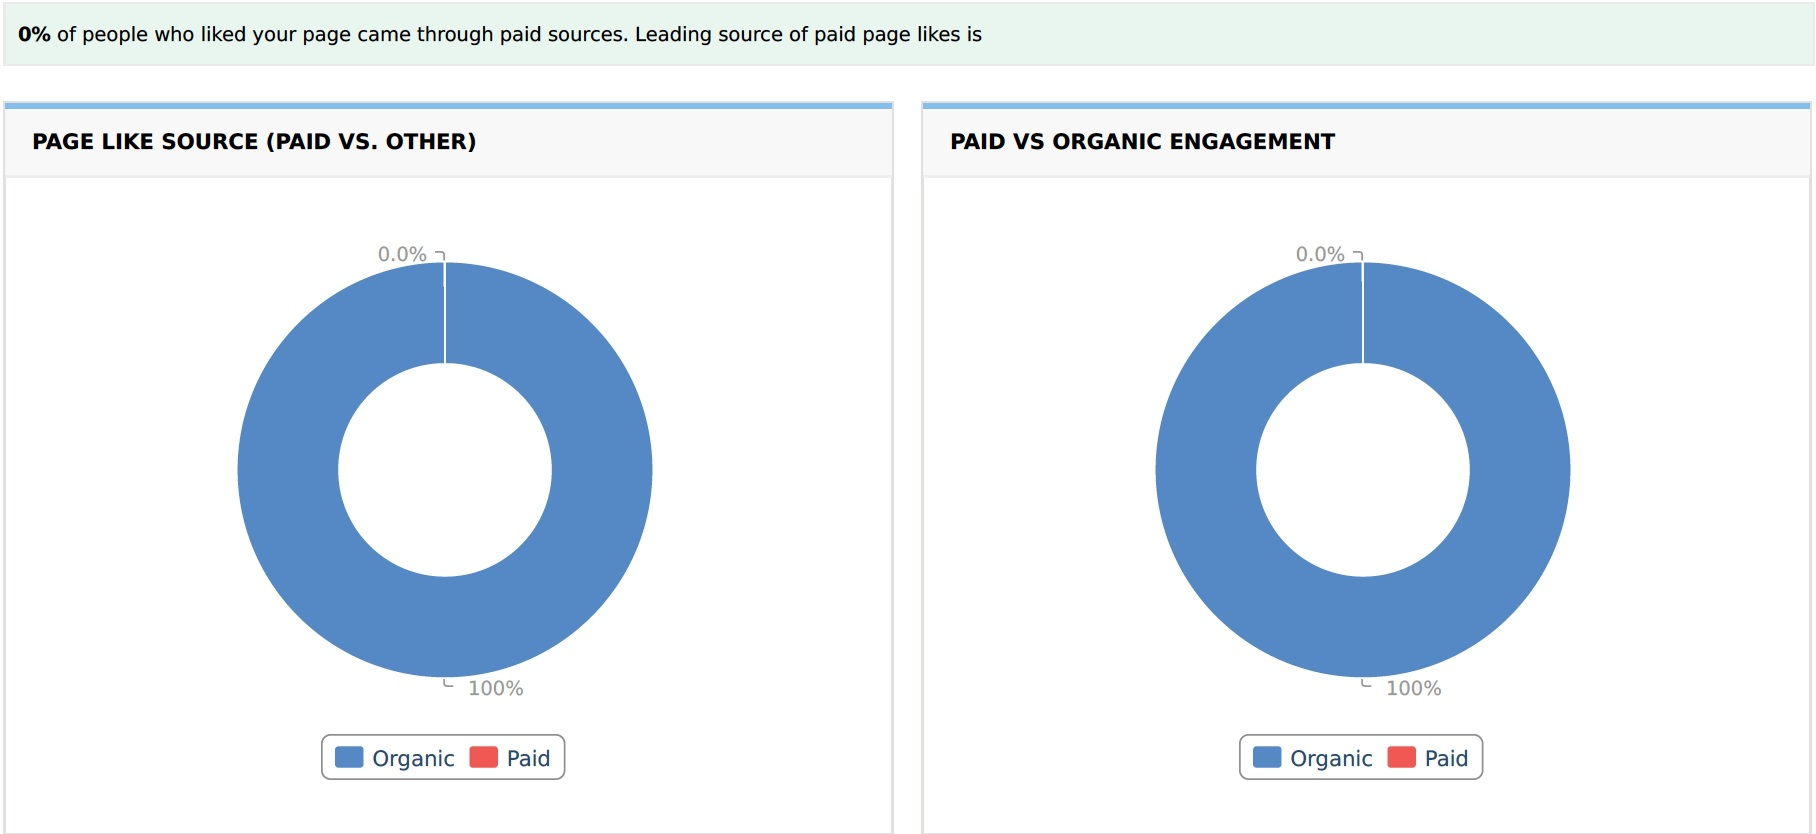 Page Like Source and Paid vs Organic Engagement